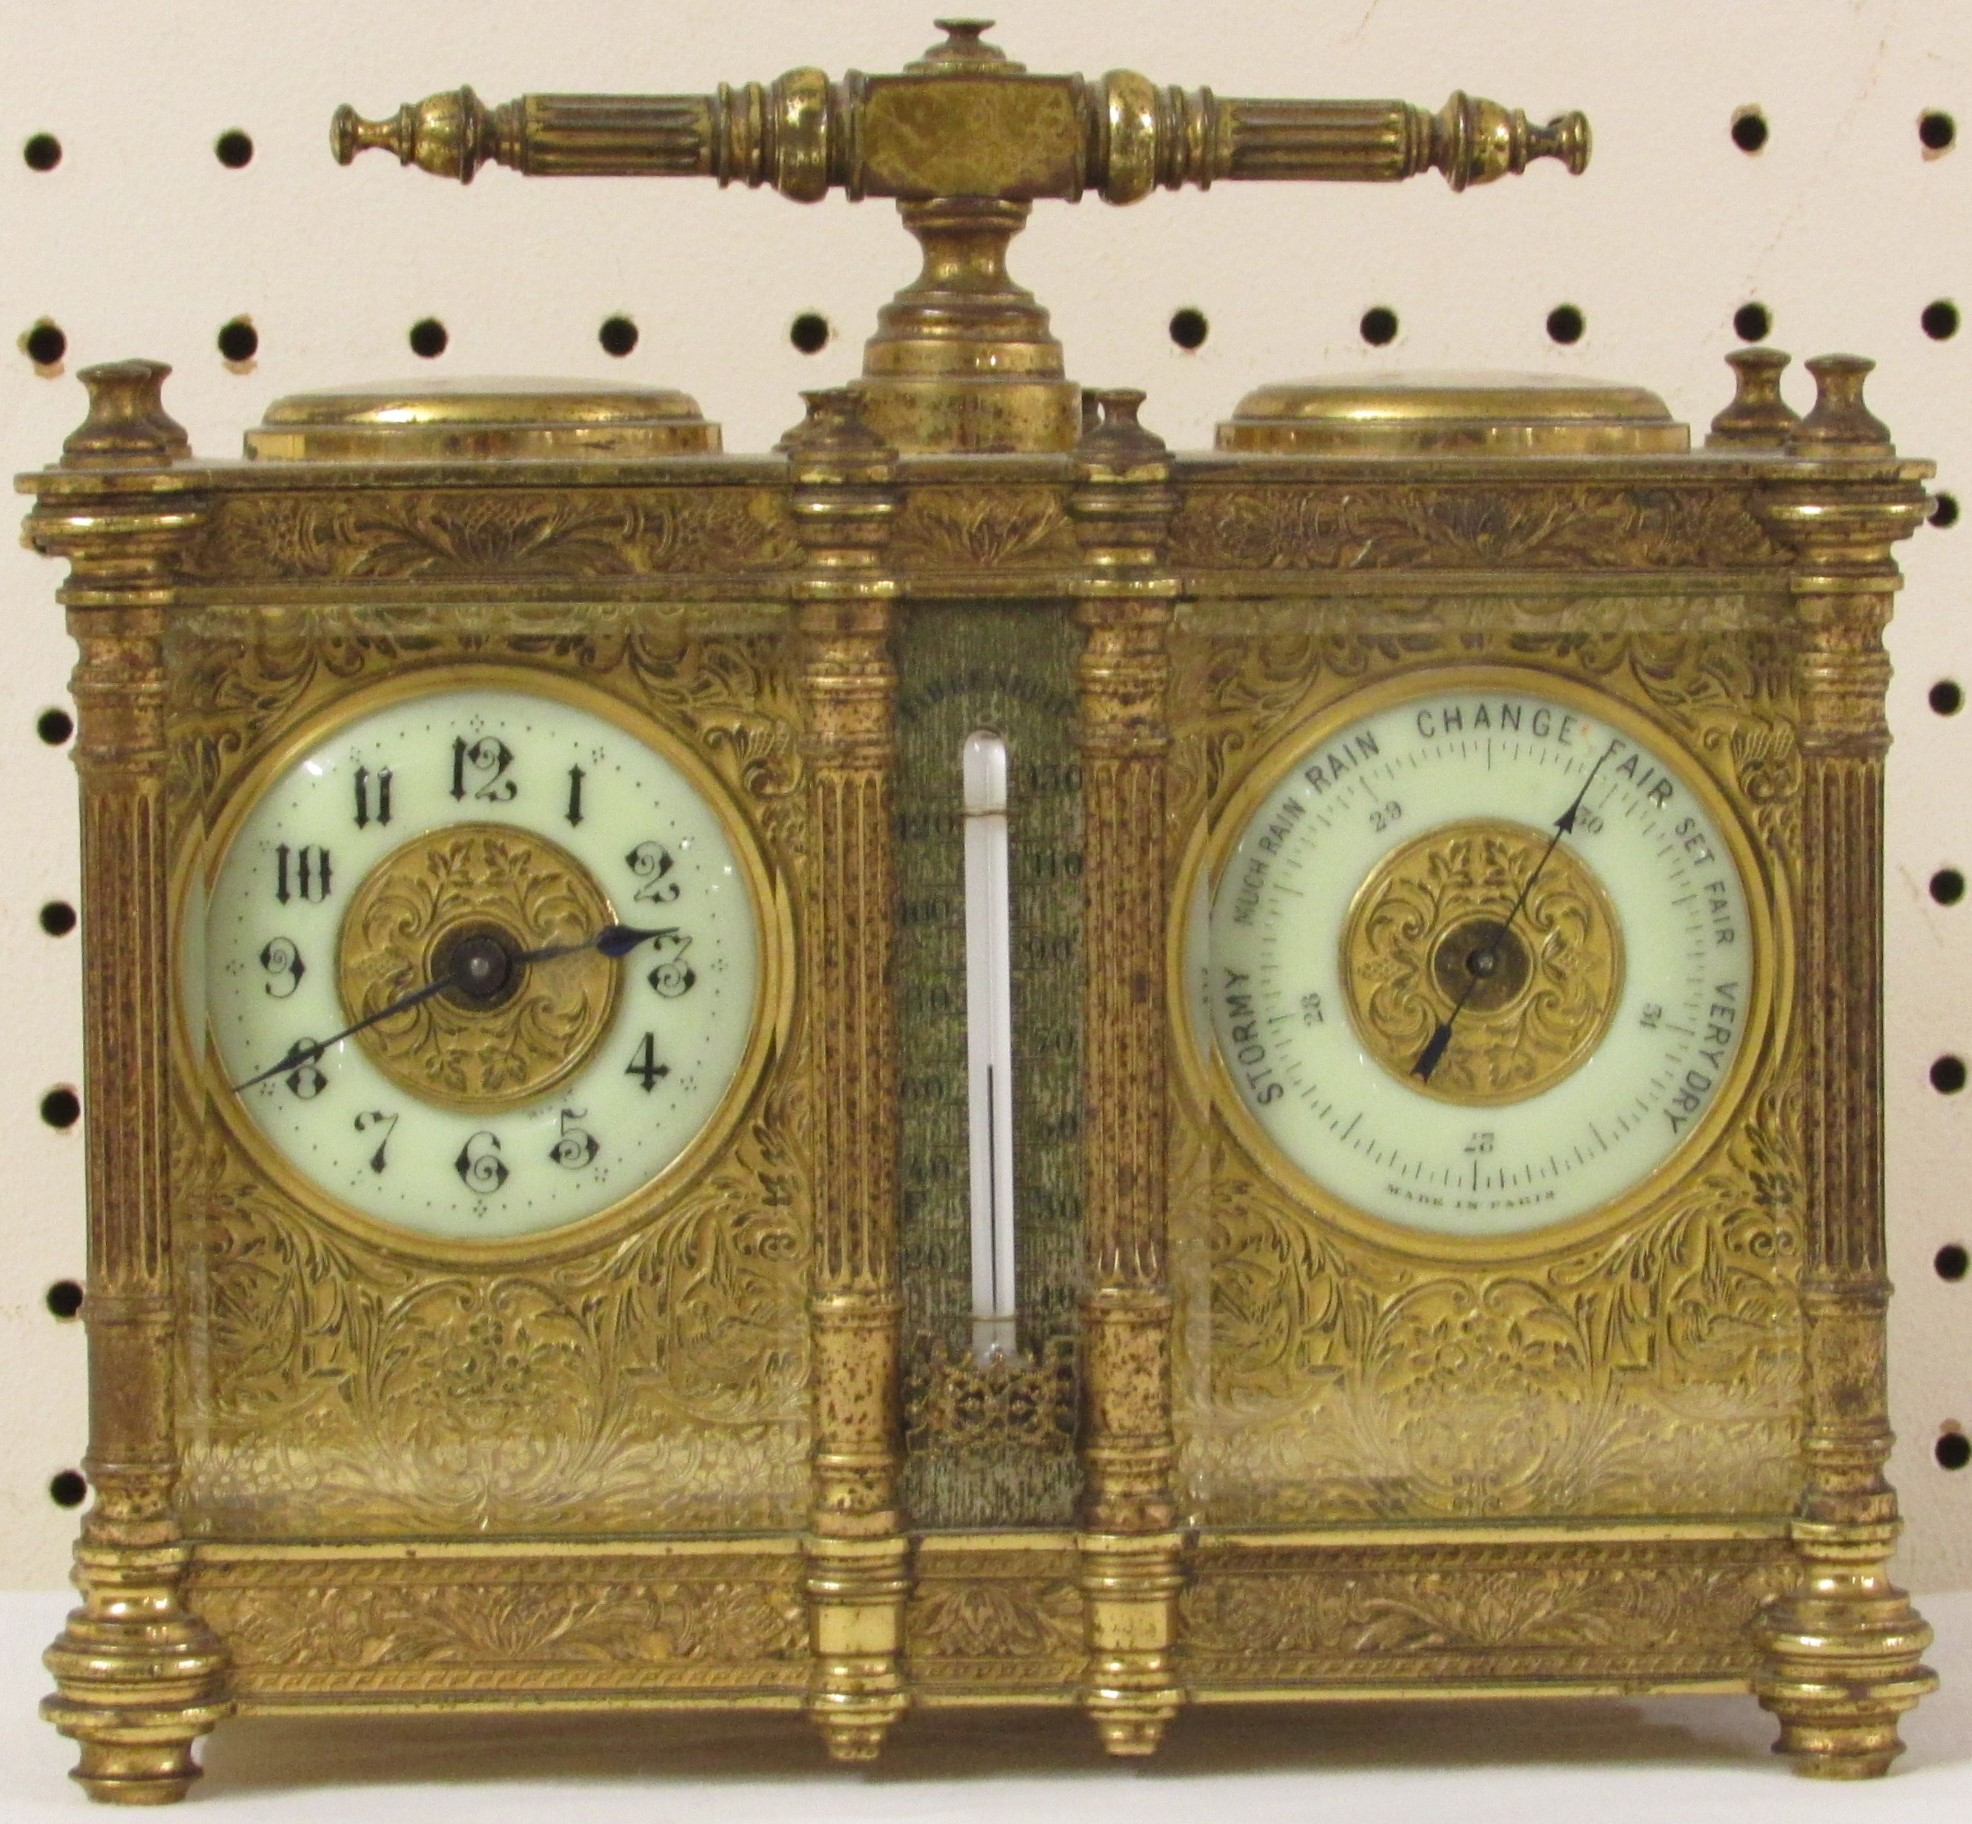 Lot 337 - A 19th century heavily chased brass and gilded bevelled glass combination carriage clock housing